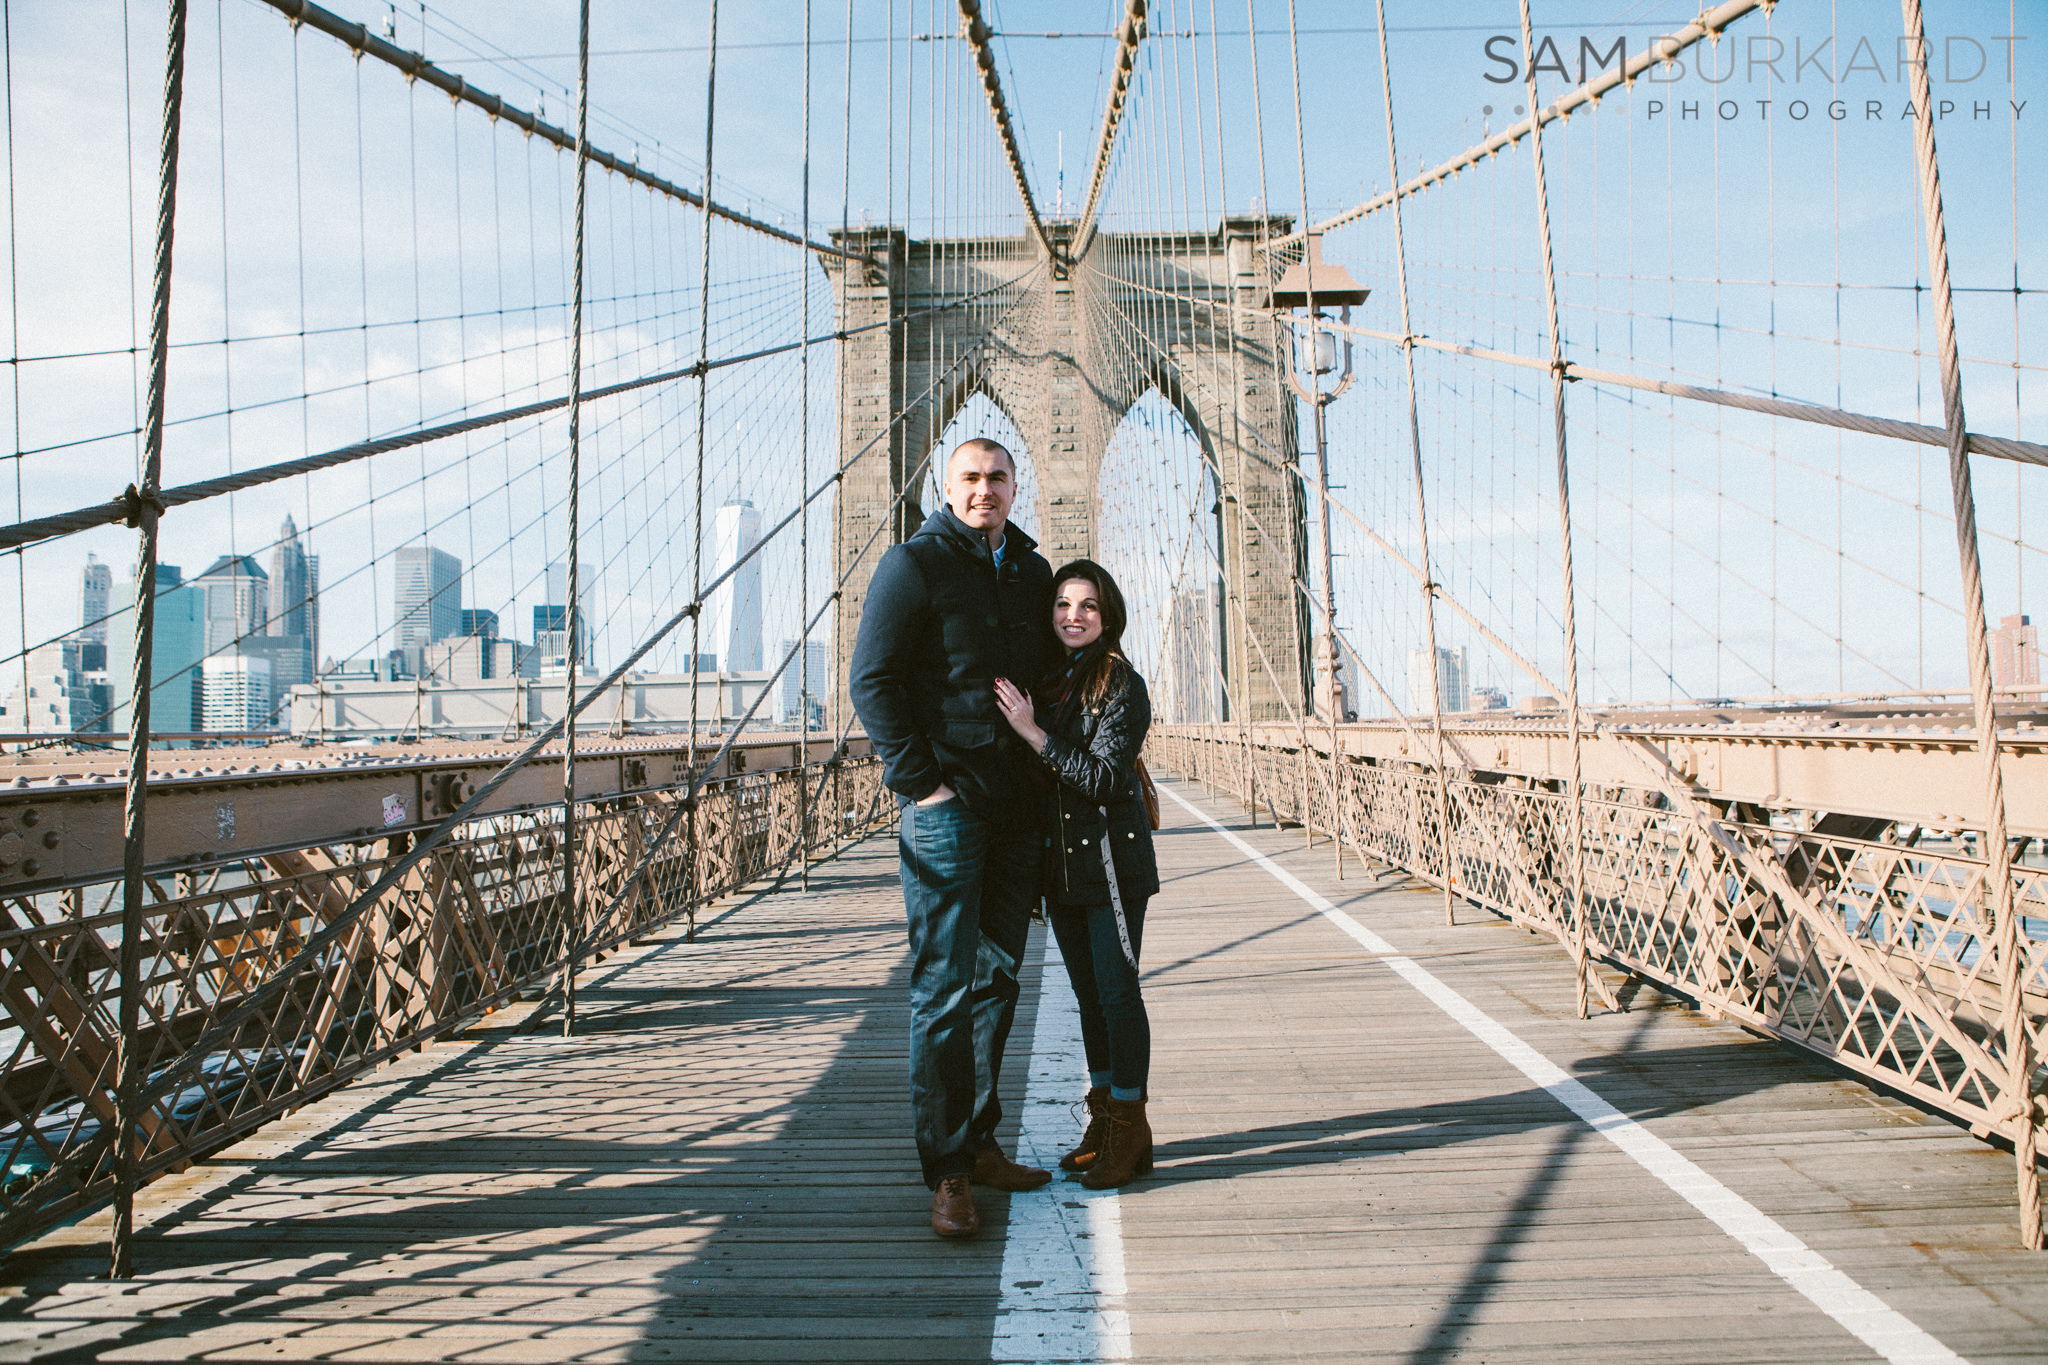 samburkardt_brooklyn_bridge_new_york_engagement_proposal_skyline_0019.jpg